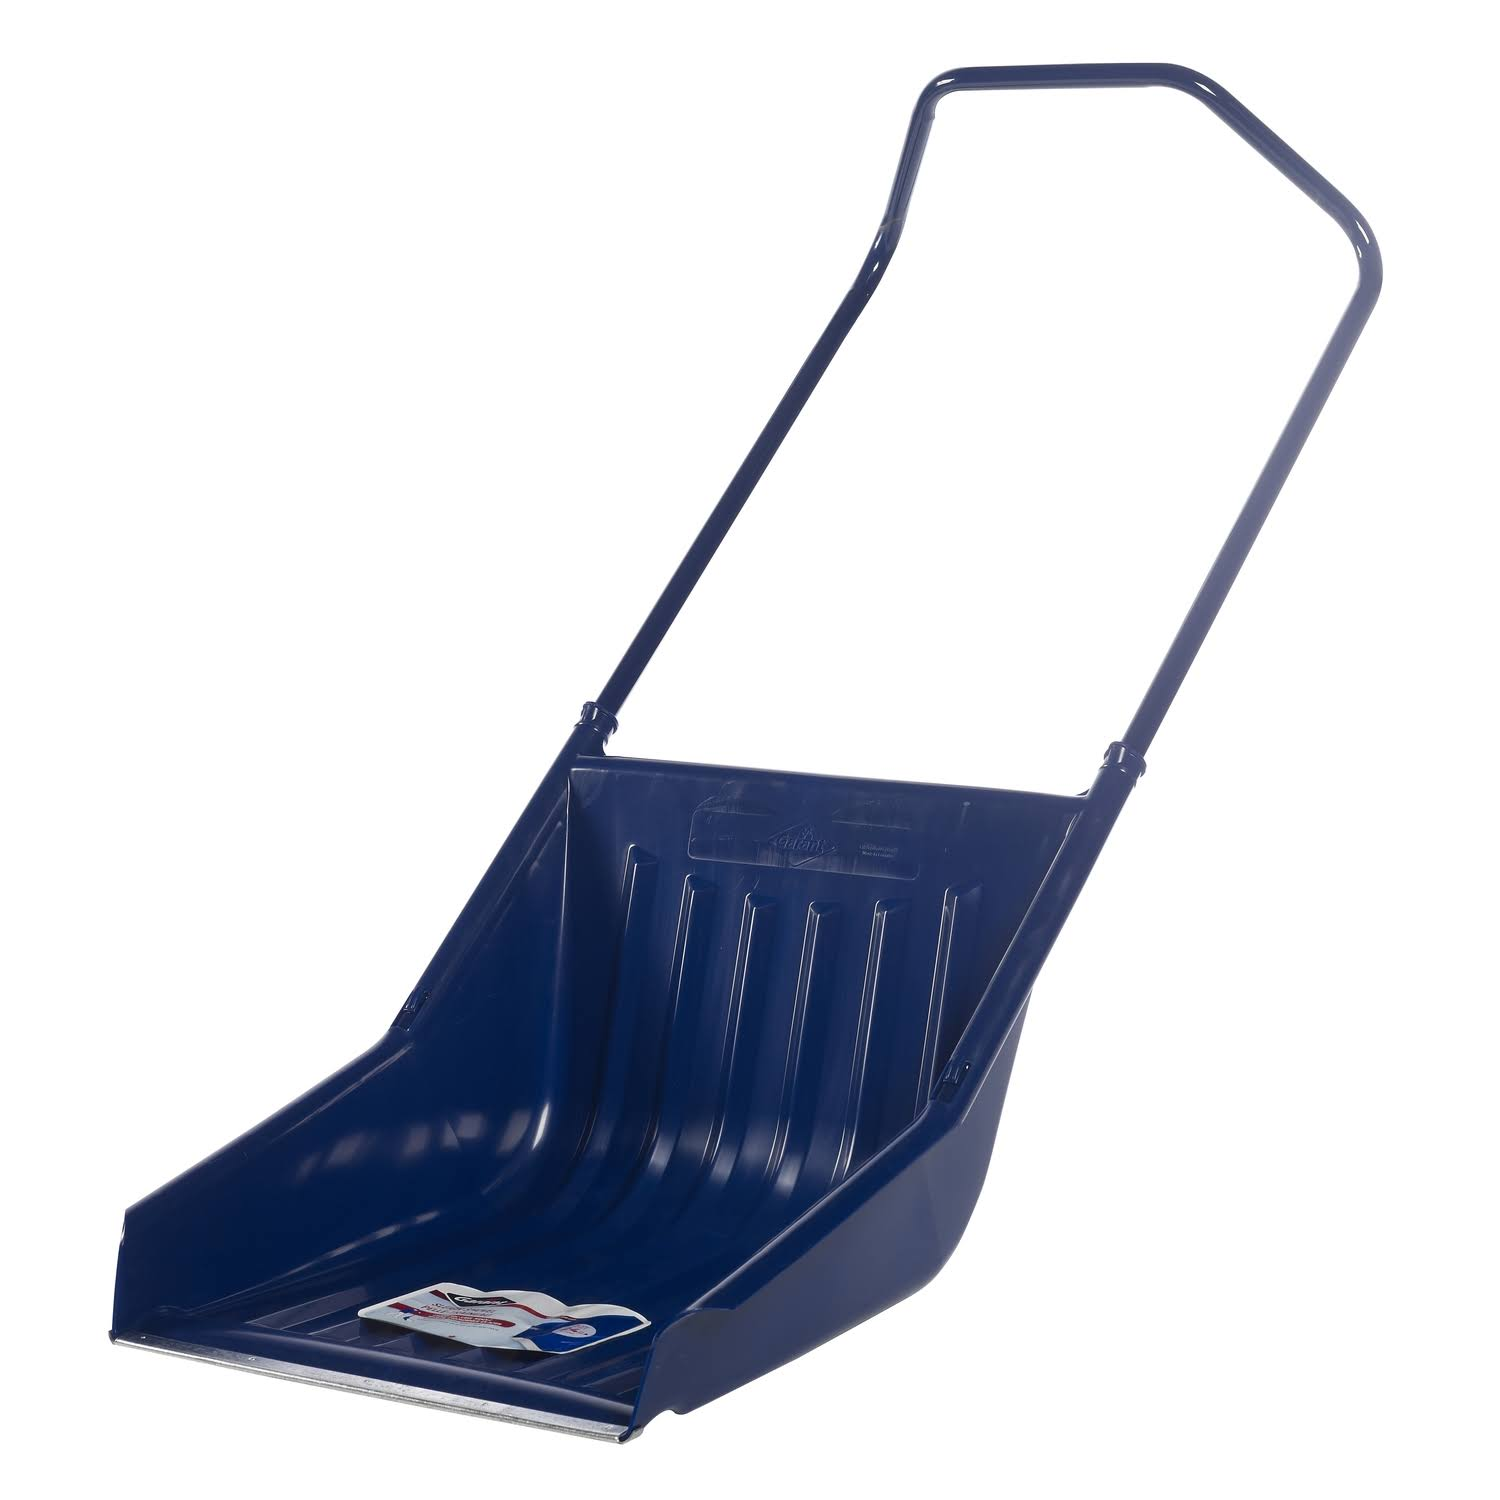 "Garant Poly Sleigh Shovel - 0-1/2"" Poly, 42 1/2"" Handle Length"